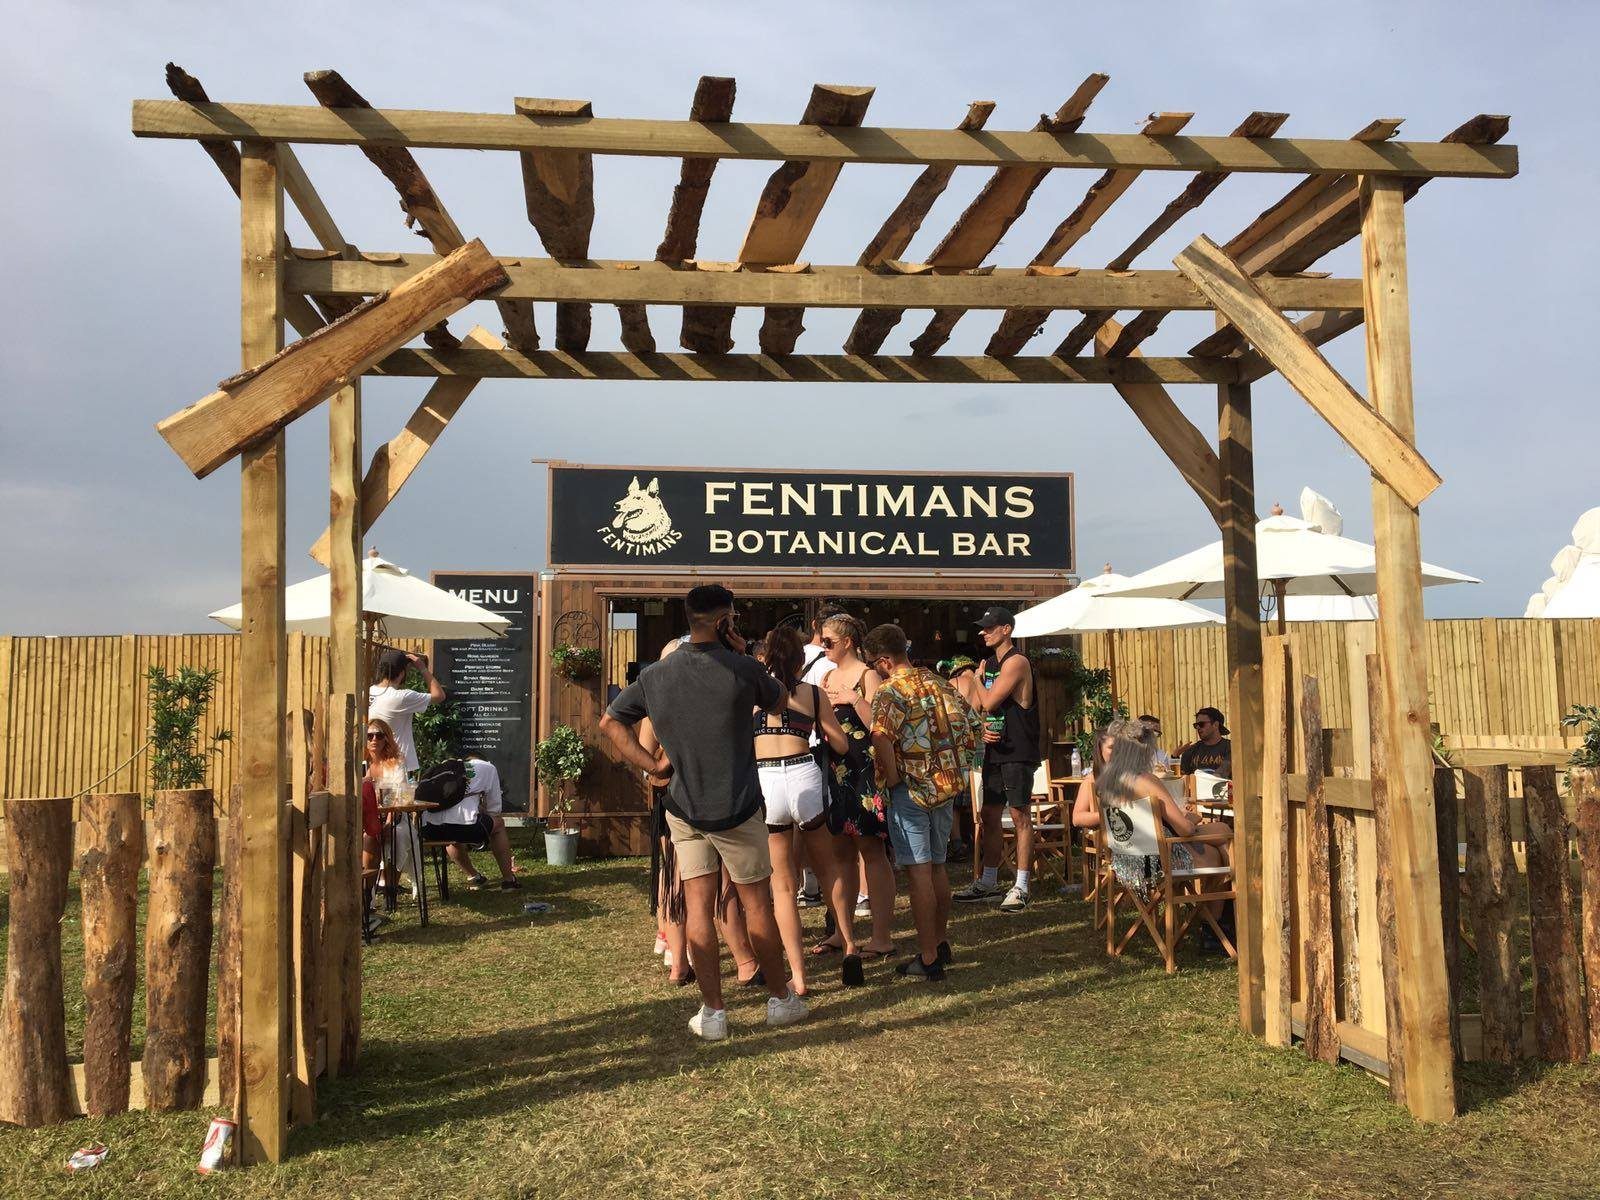 The Fentimans Botanical Bar we designed and built last year, at Lost Village Festival 2017